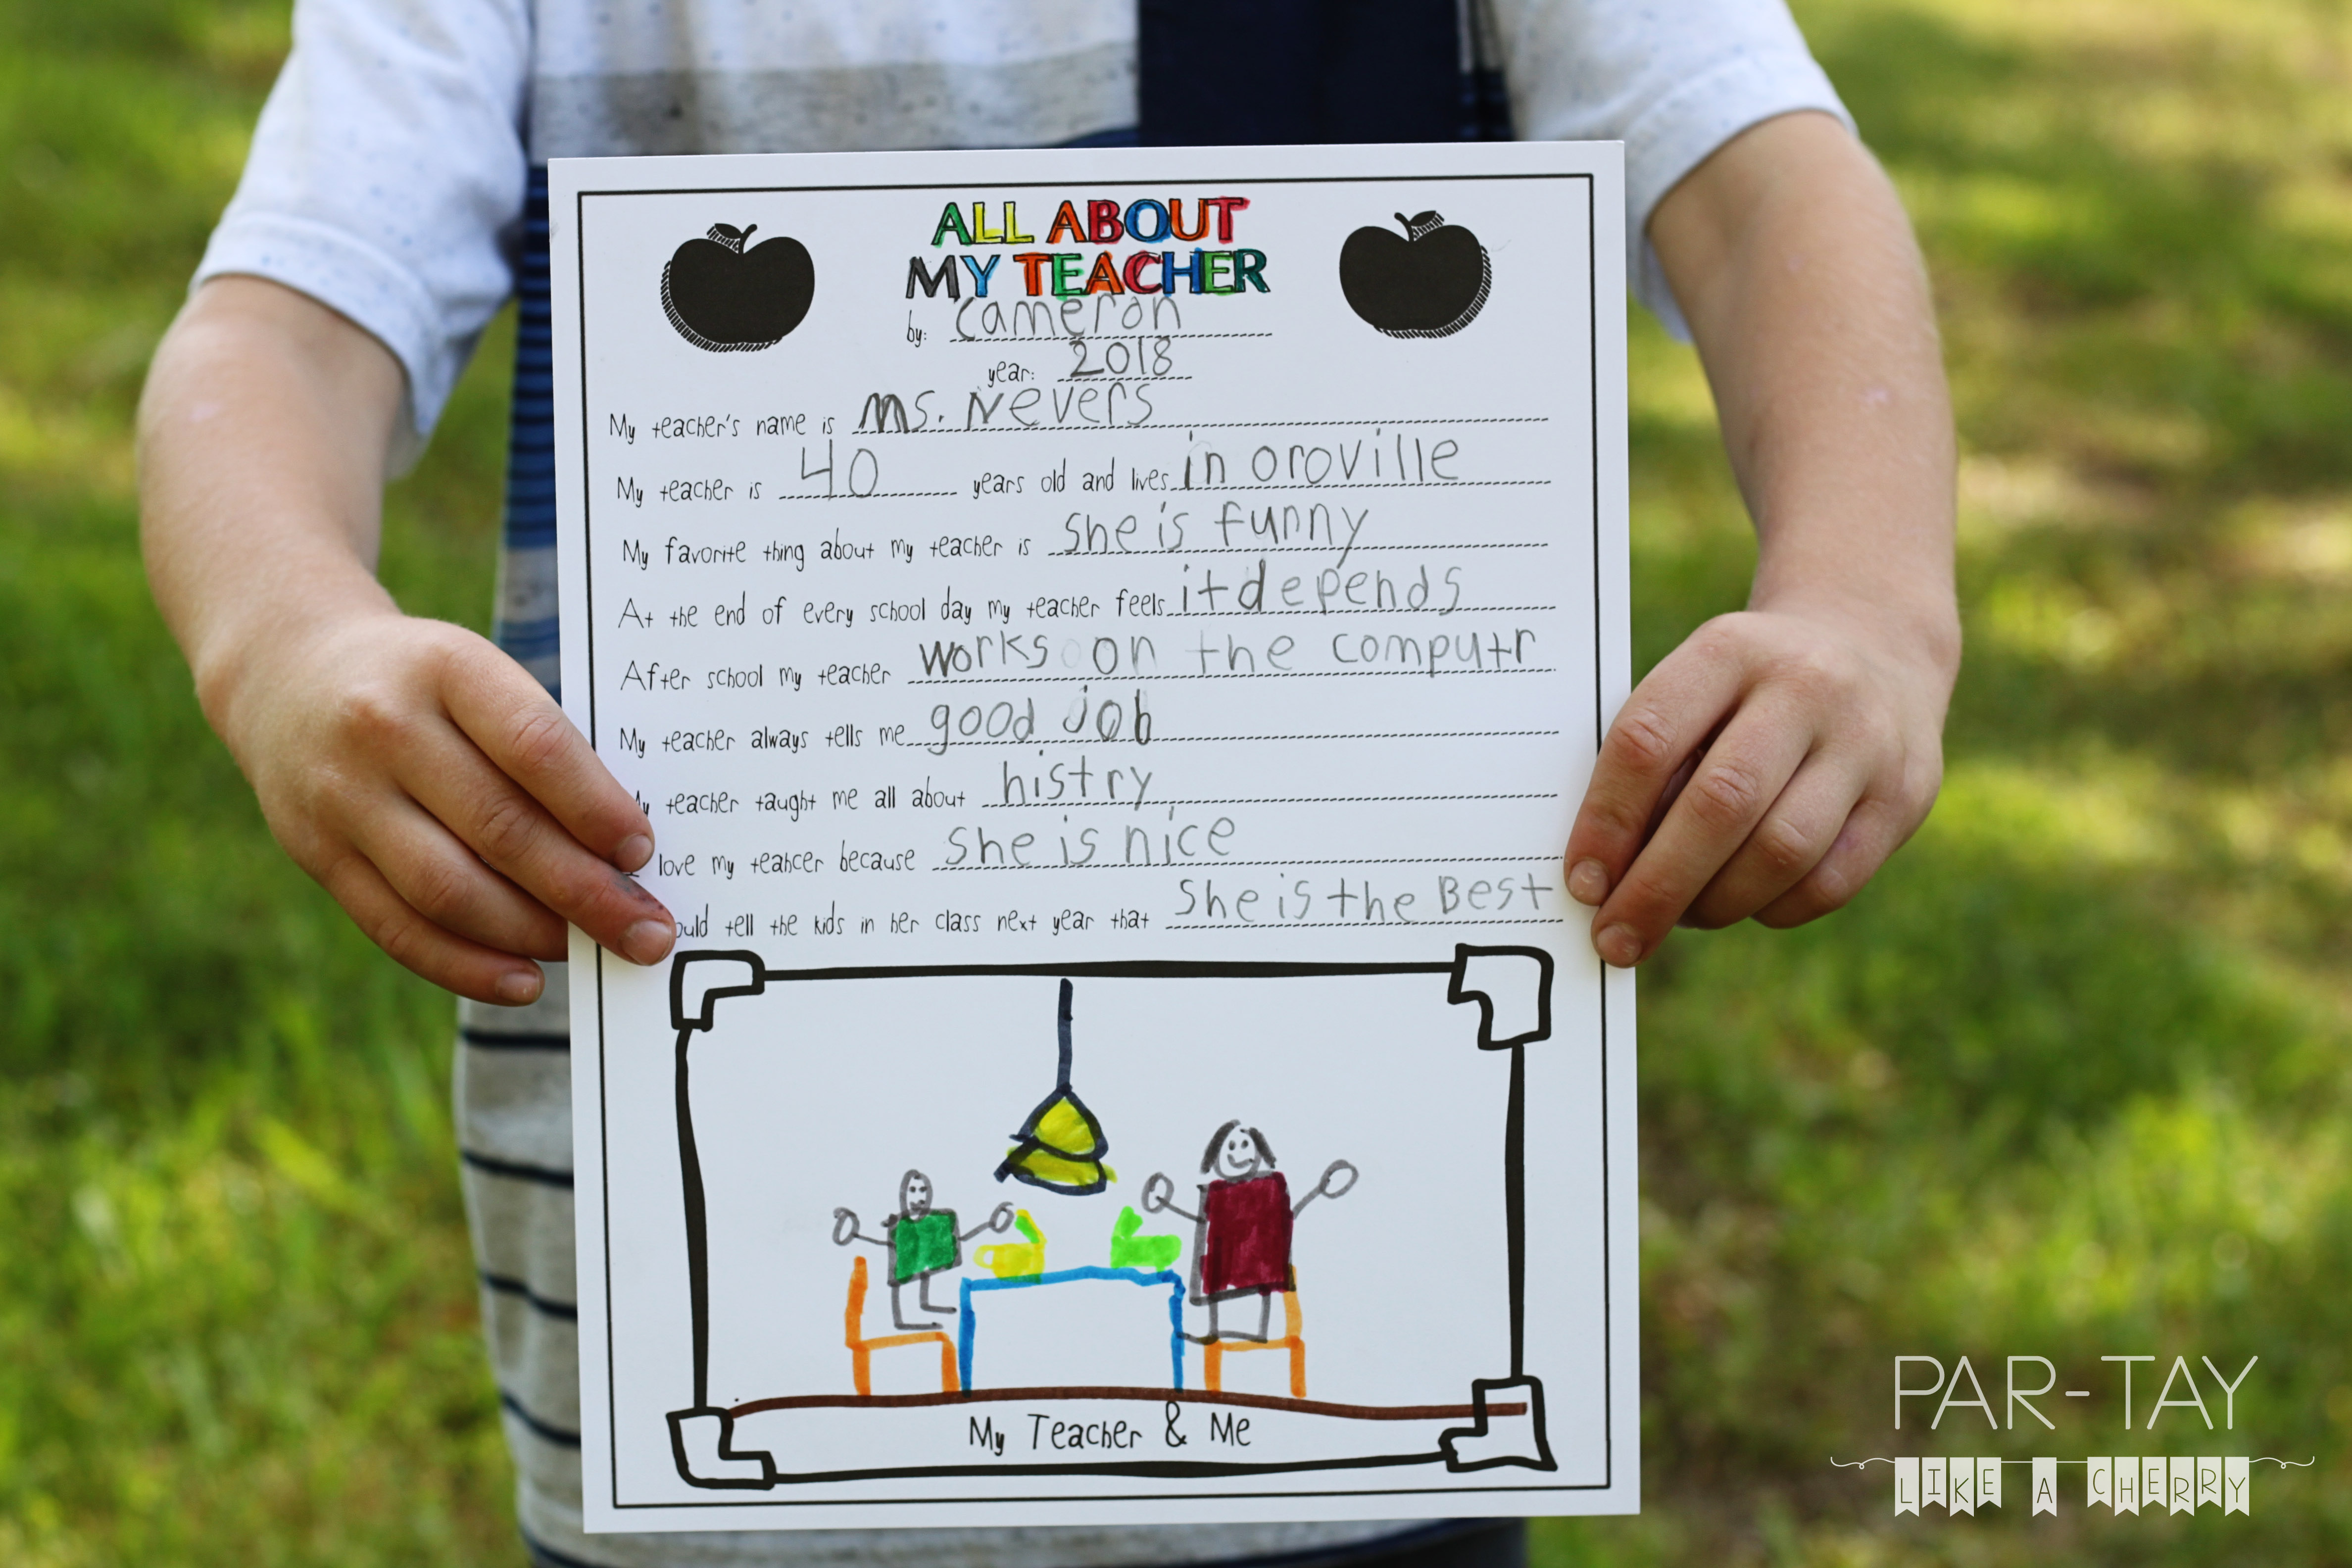 All About My Teacher Free Teacher Appreciation Printable Party Like A Cherry